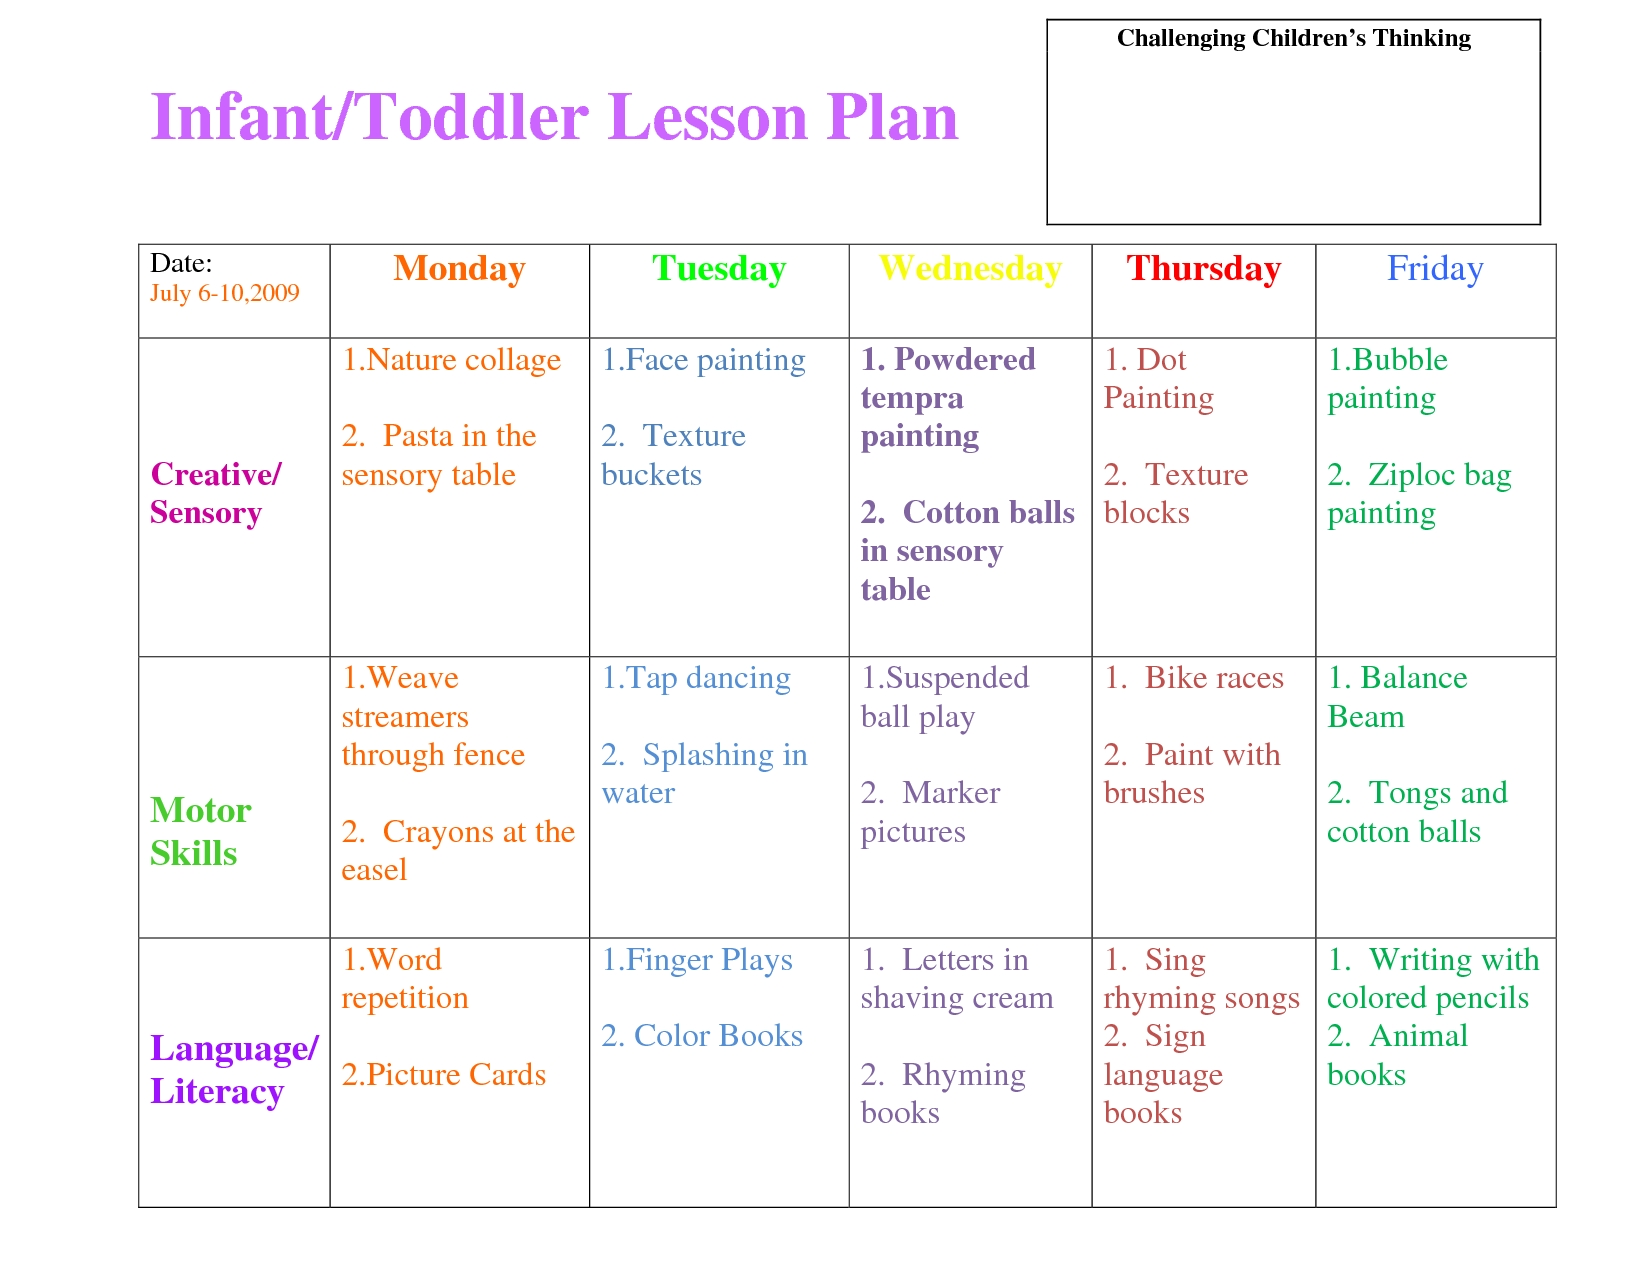 infant blank lesson plan sheets | infanttoddler lesson plan | lesson